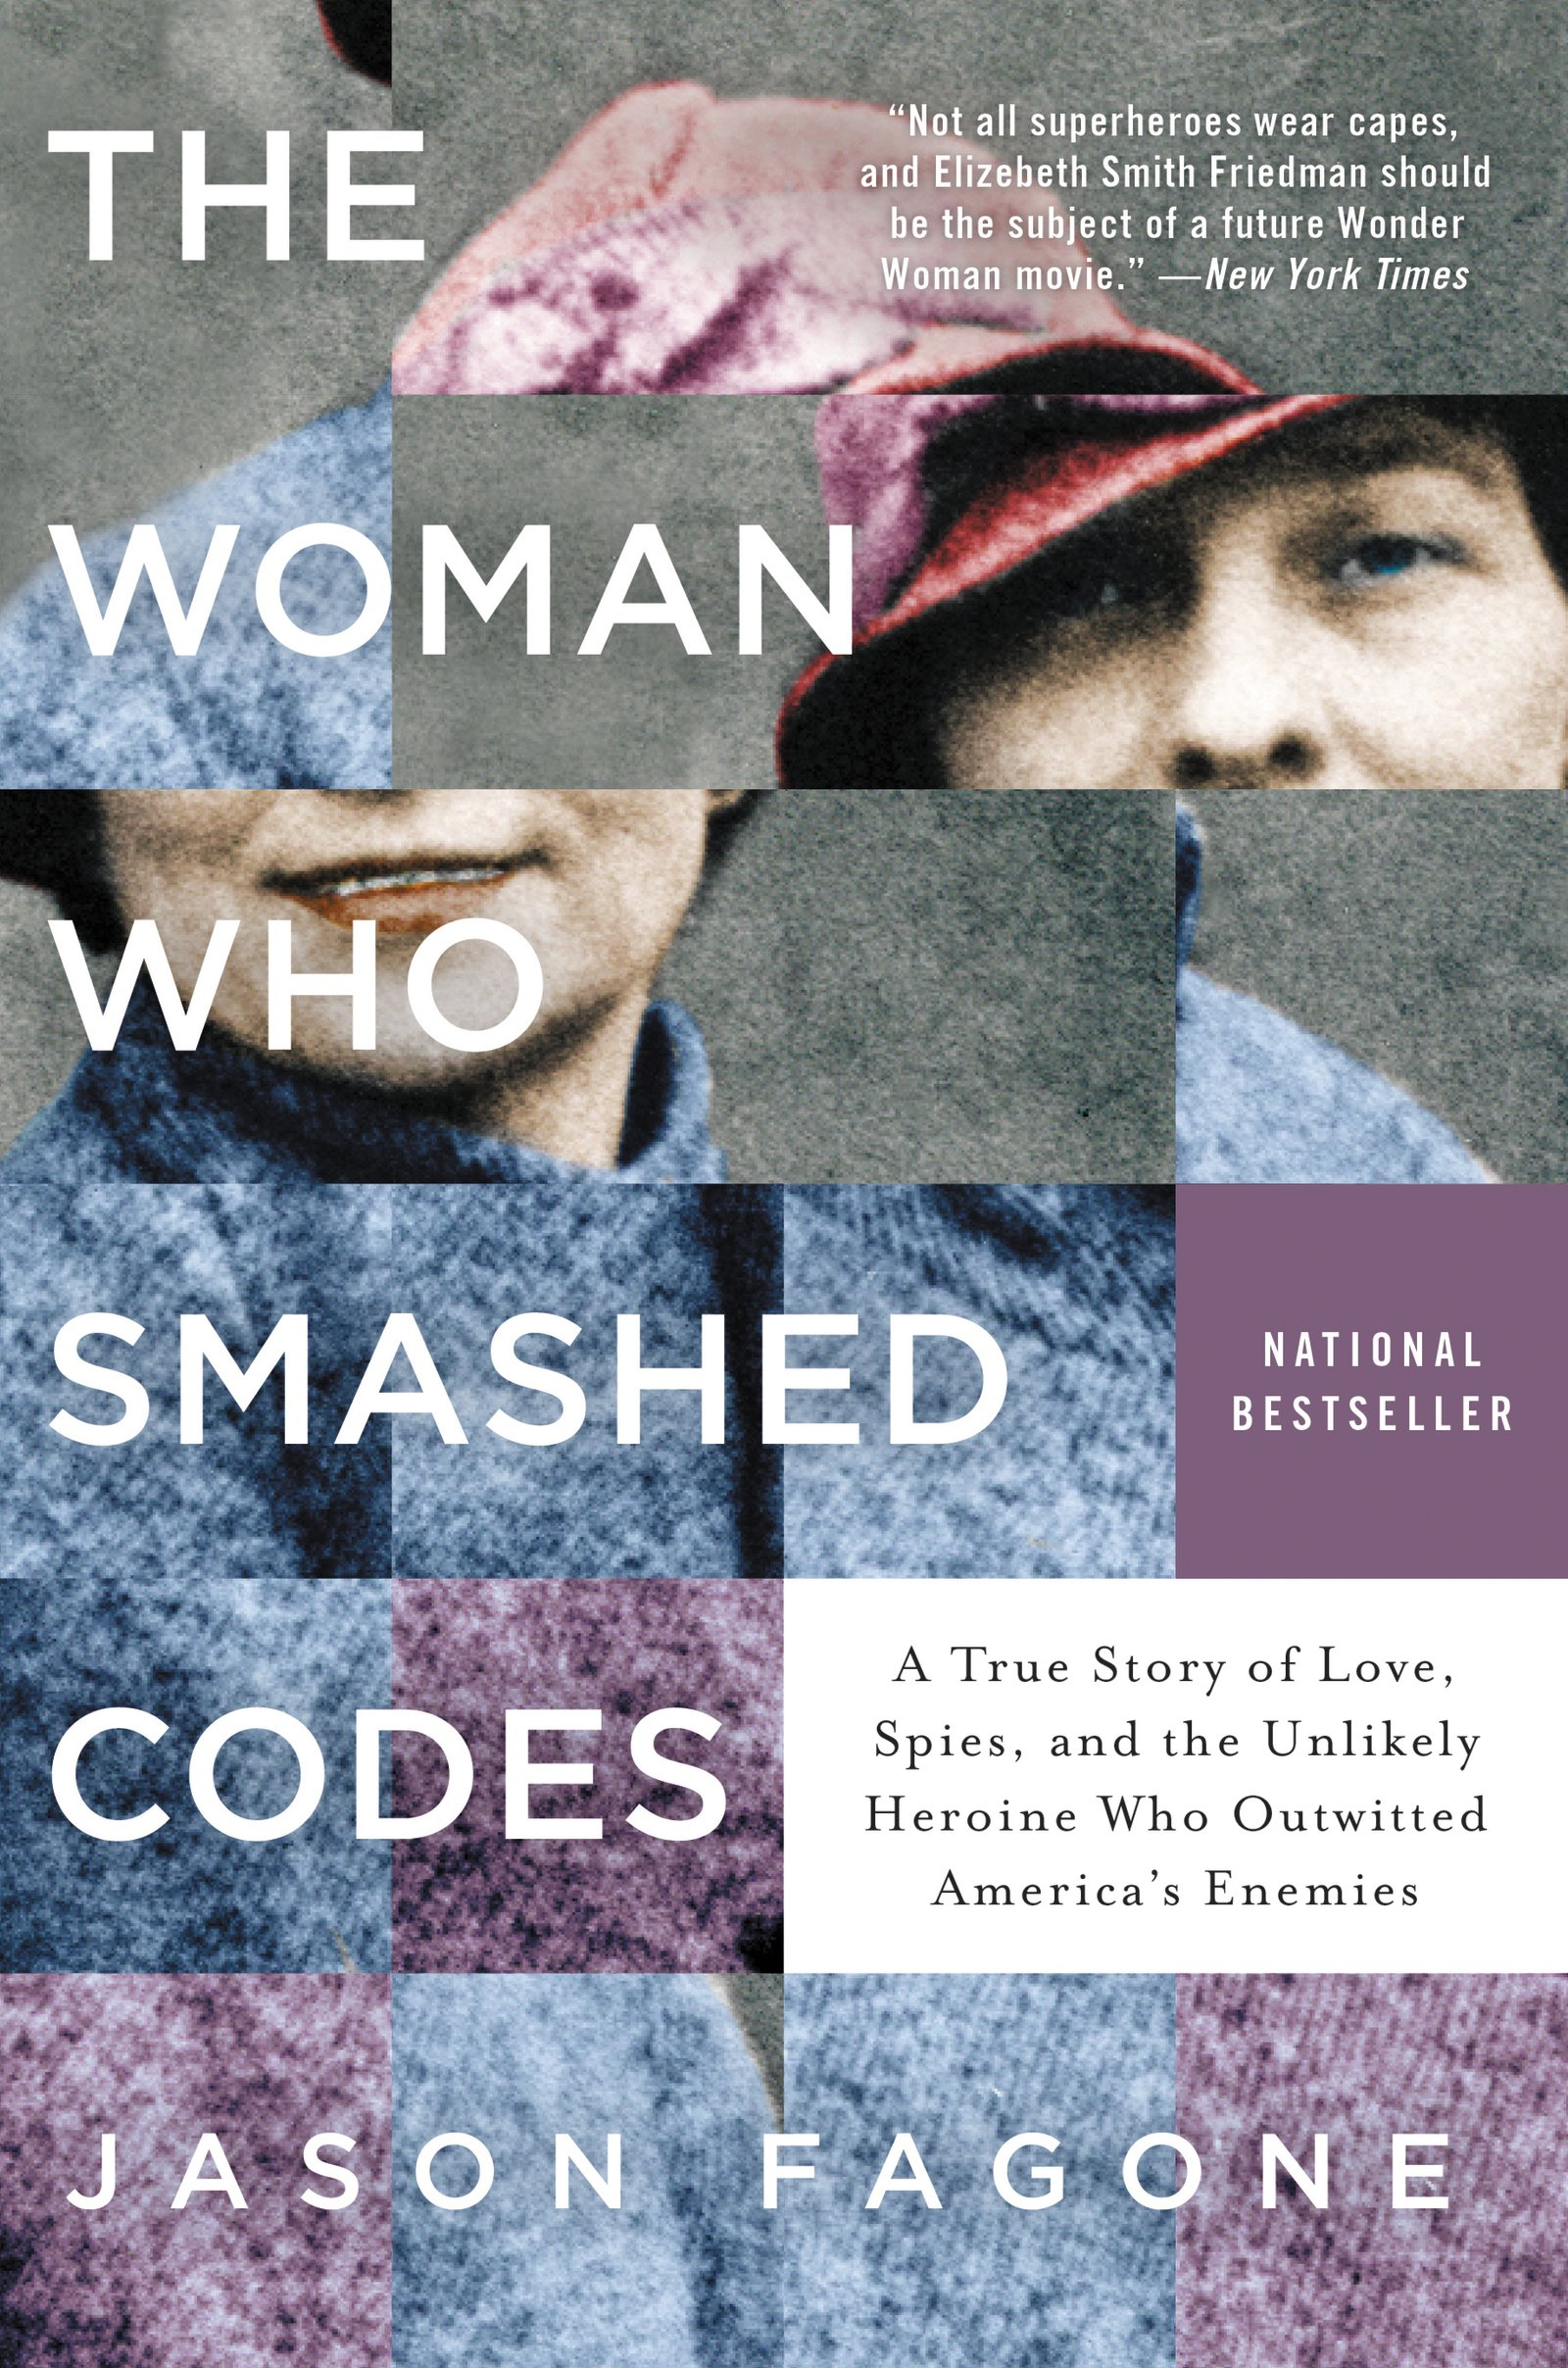 Book Discussion: The Woman Who Smashed Codes